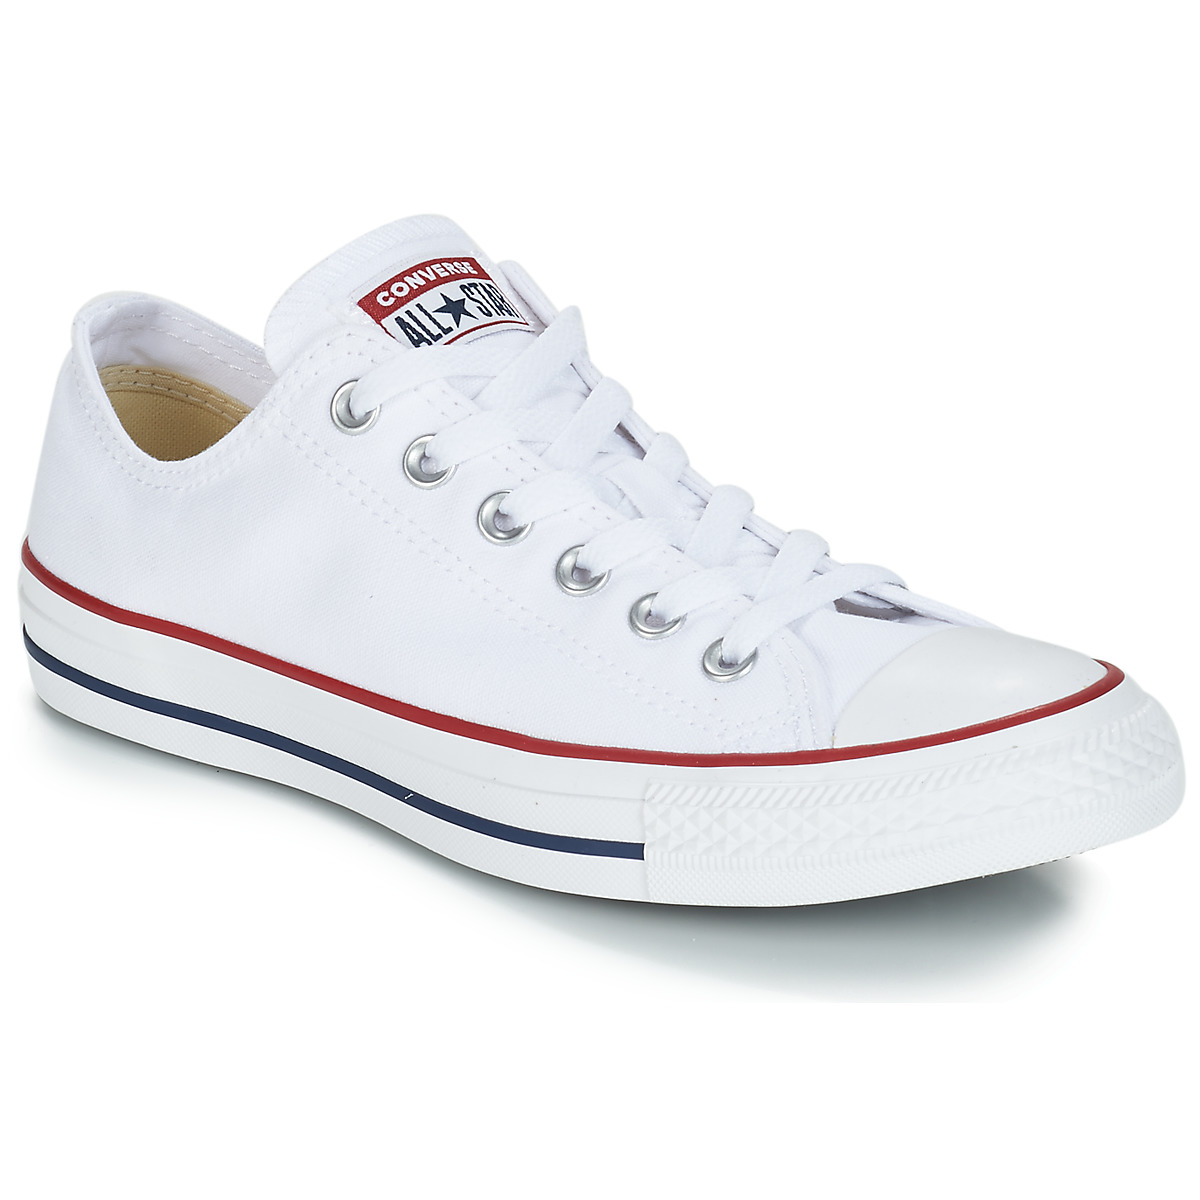 c898d78ac8317 Zapatos Zapatillas bajas Converse CHUCK TAYLOR ALL STAR CORE OX Blanco    Optical